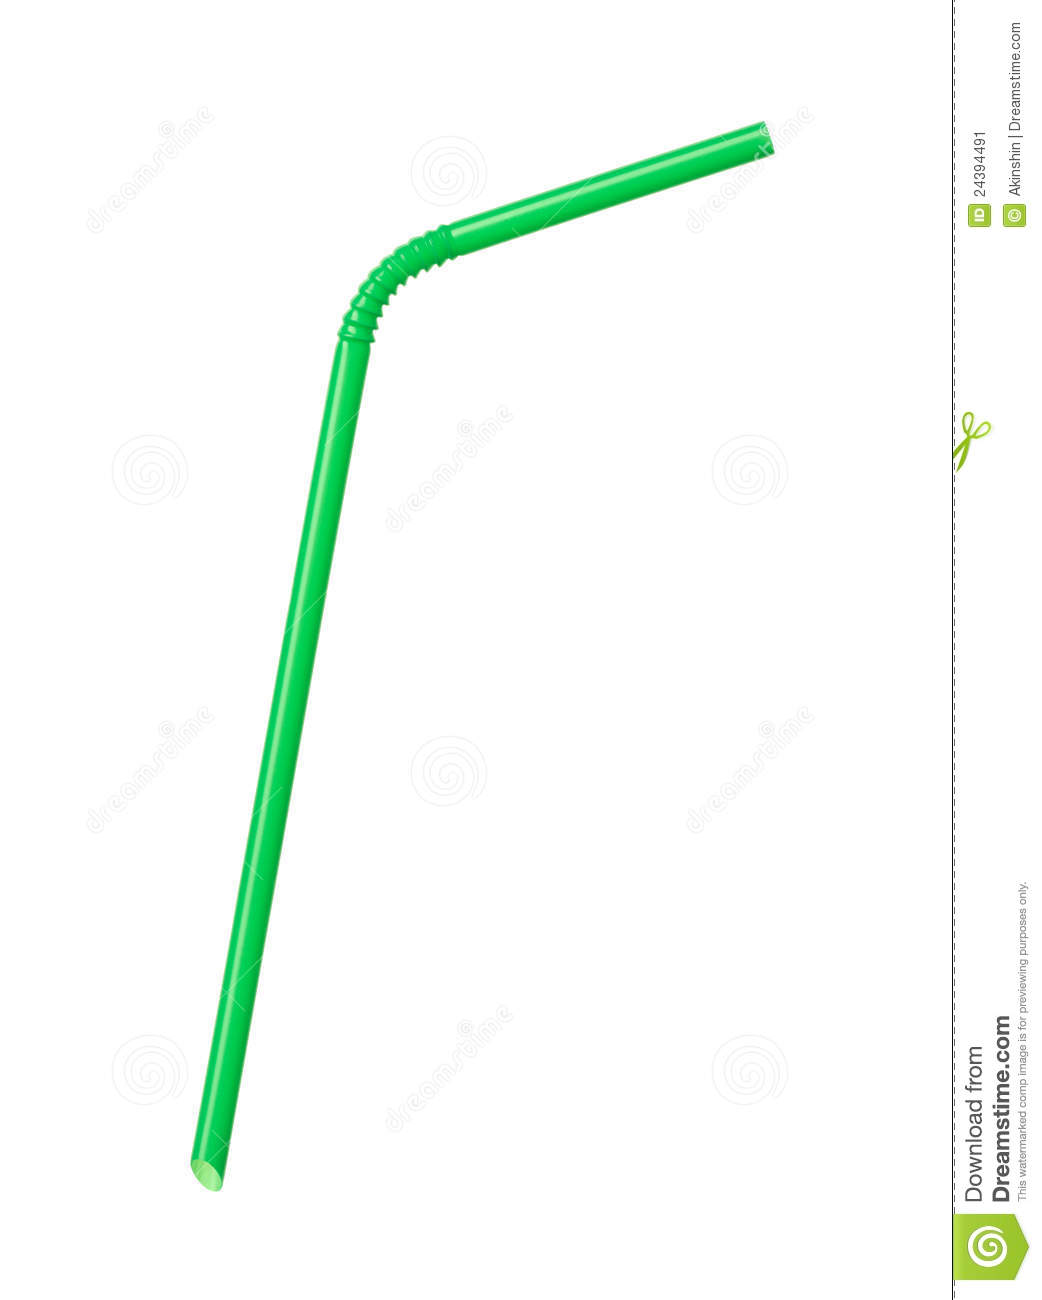 Drinking straw clipart.